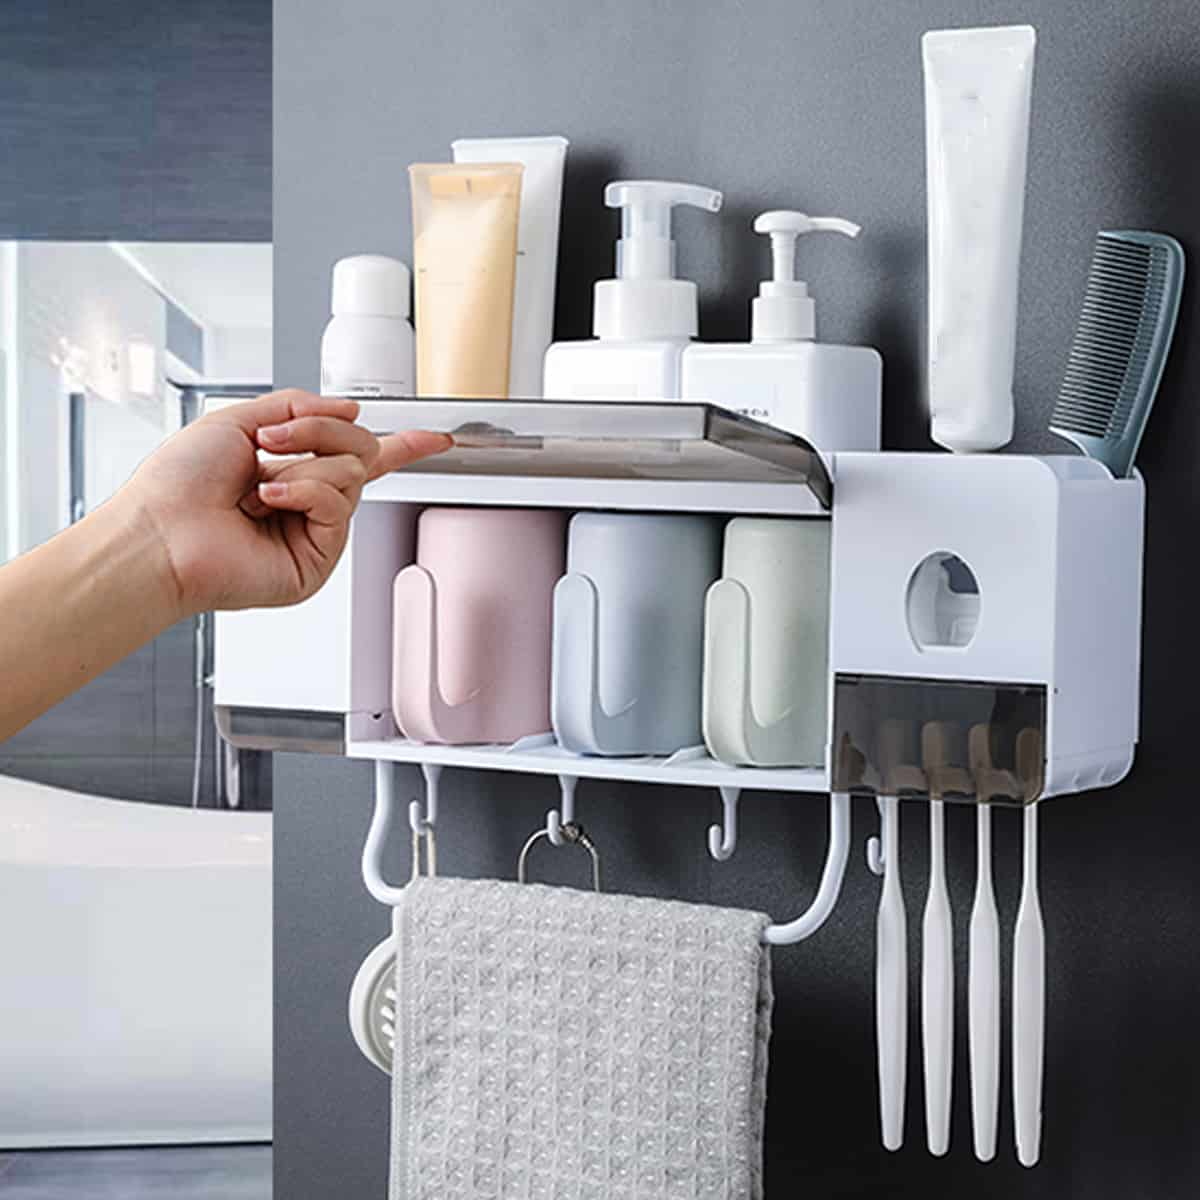 DIY Towel and Toothbrush Holder